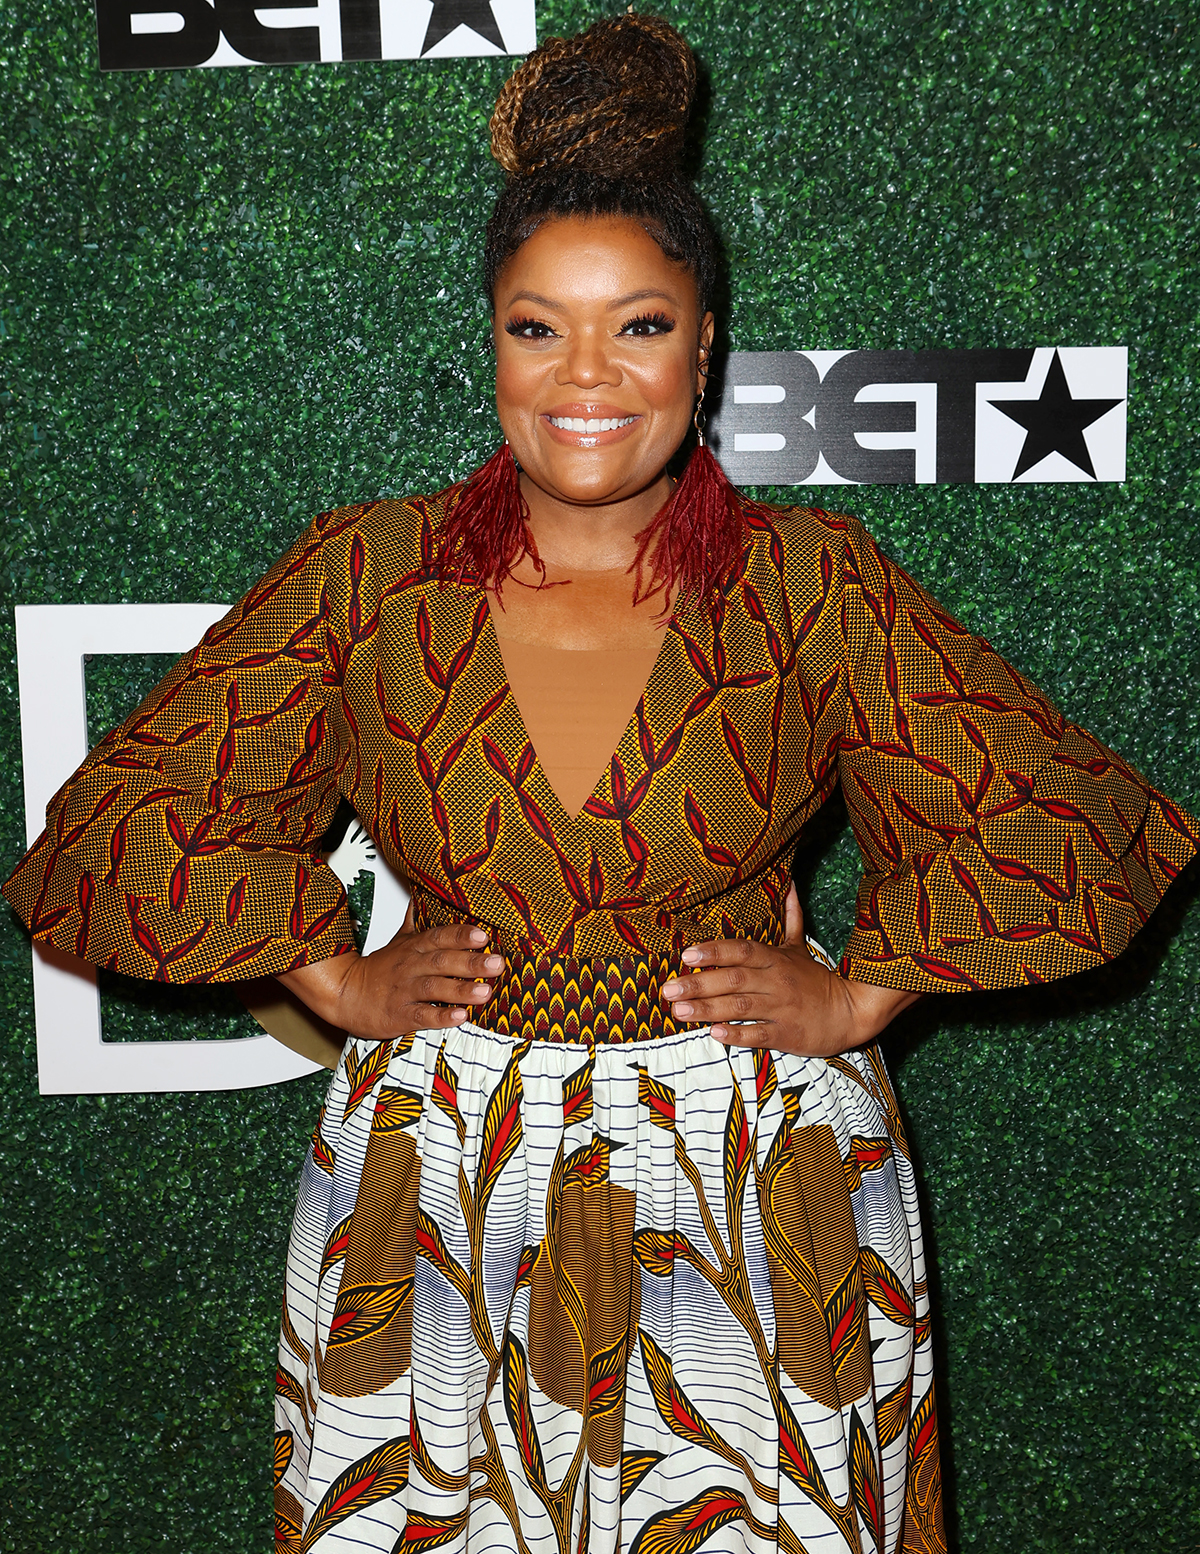 Actress Yvette Nicole Brown attends The Diaspora Dialogues' 3rd Annual International Women Of Power Luncheon at Arbat Banquet Hall on March 07, 2020 in Burbank, California.